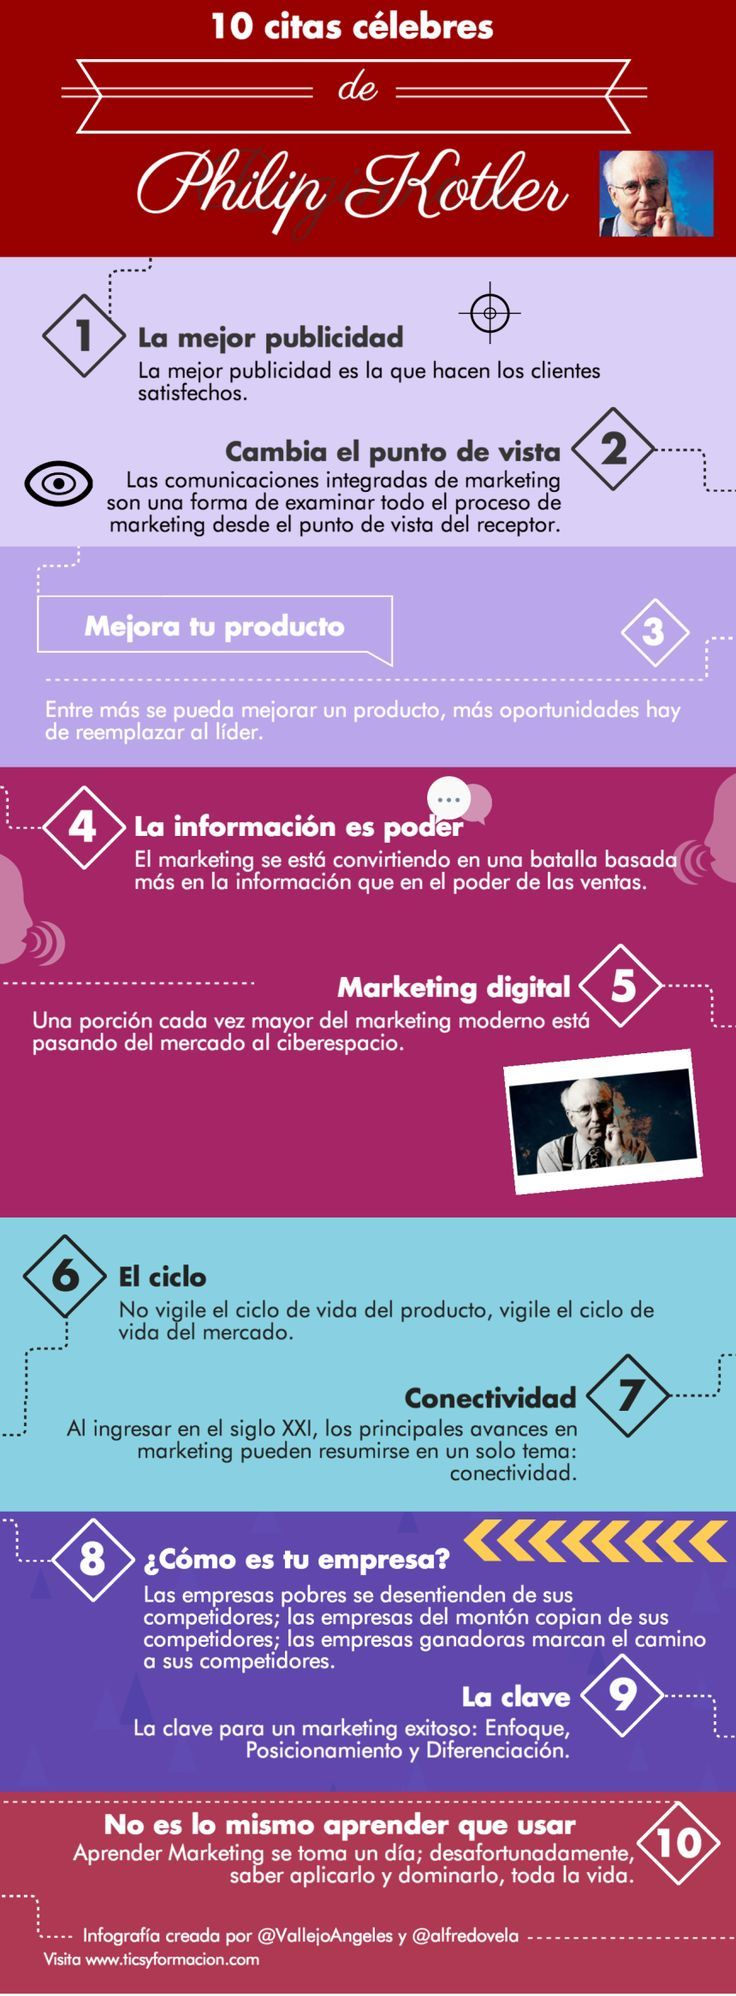 Frases de Philip Kotler #marketing >